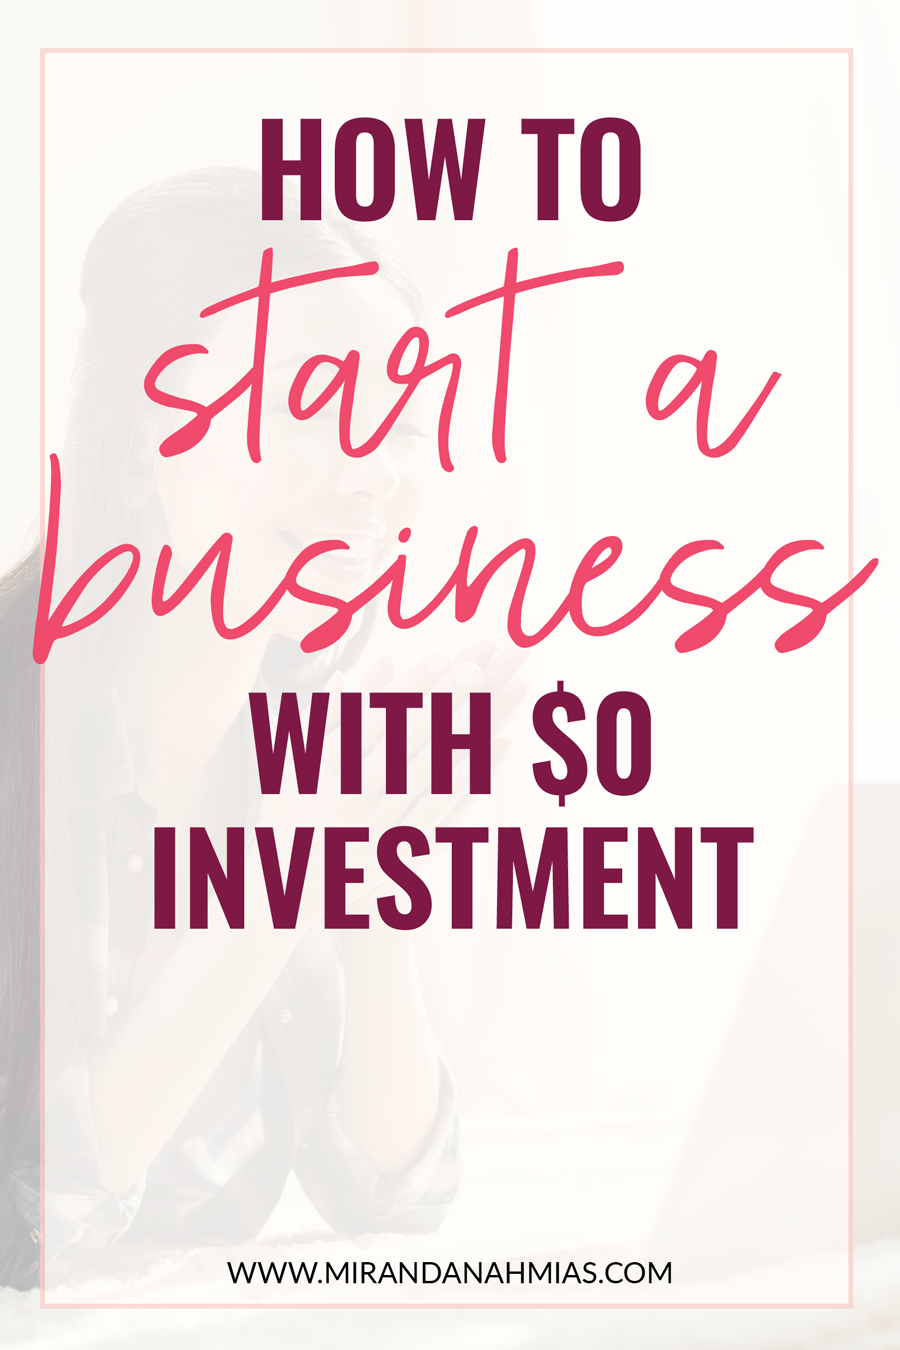 Want to start a business but can't afford to? Here's how to start a business online with $0 investment! | Miranda Nahmias & Co. — Score New Clients and Explode Your Business with Systemized Marketing